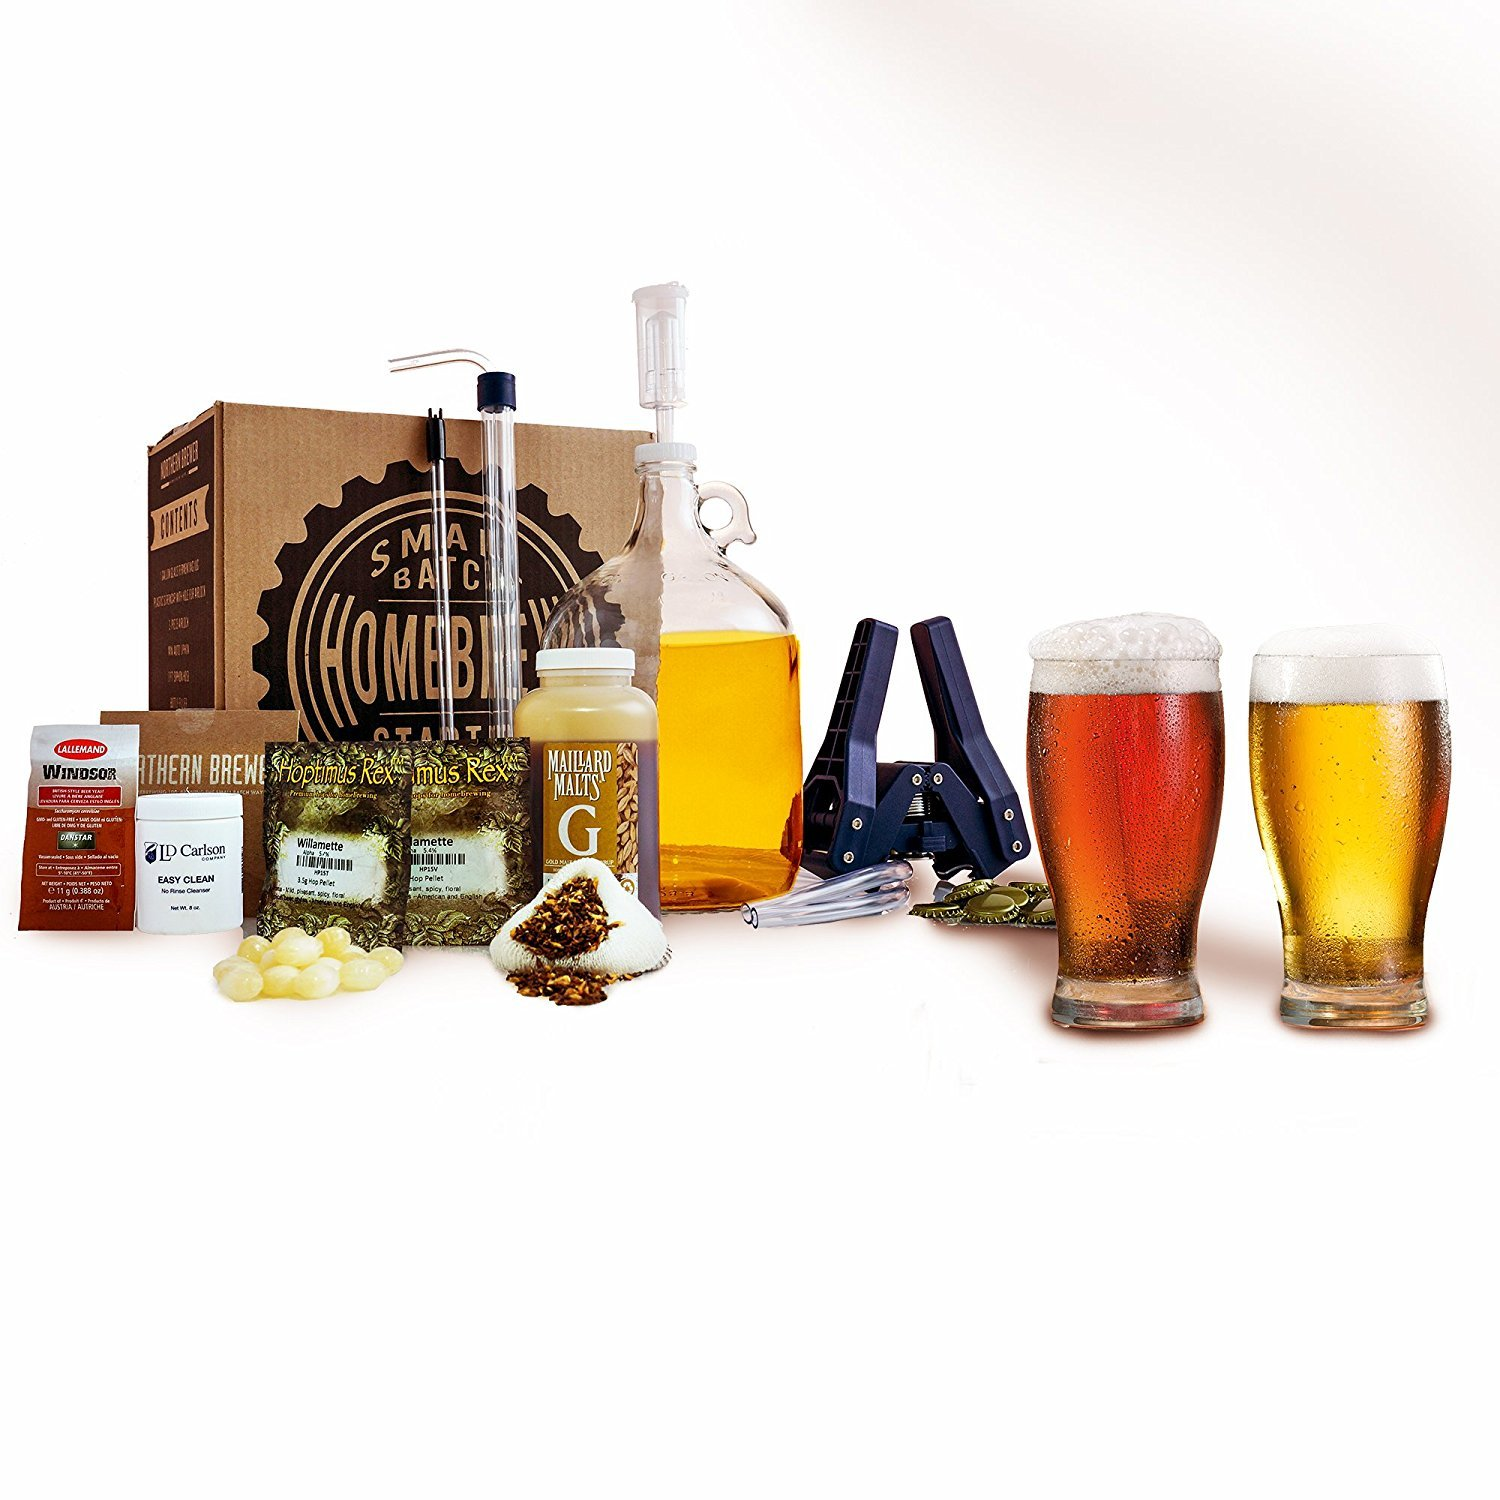 Northern Brewer Plinian Legacy Double IPA Beer Recipe Kit - Small Batch HomeBrewing Beer Brewing Starter Kit - Fermentation Jug Equipment For Making 1 Gallon Of Homemade Brew